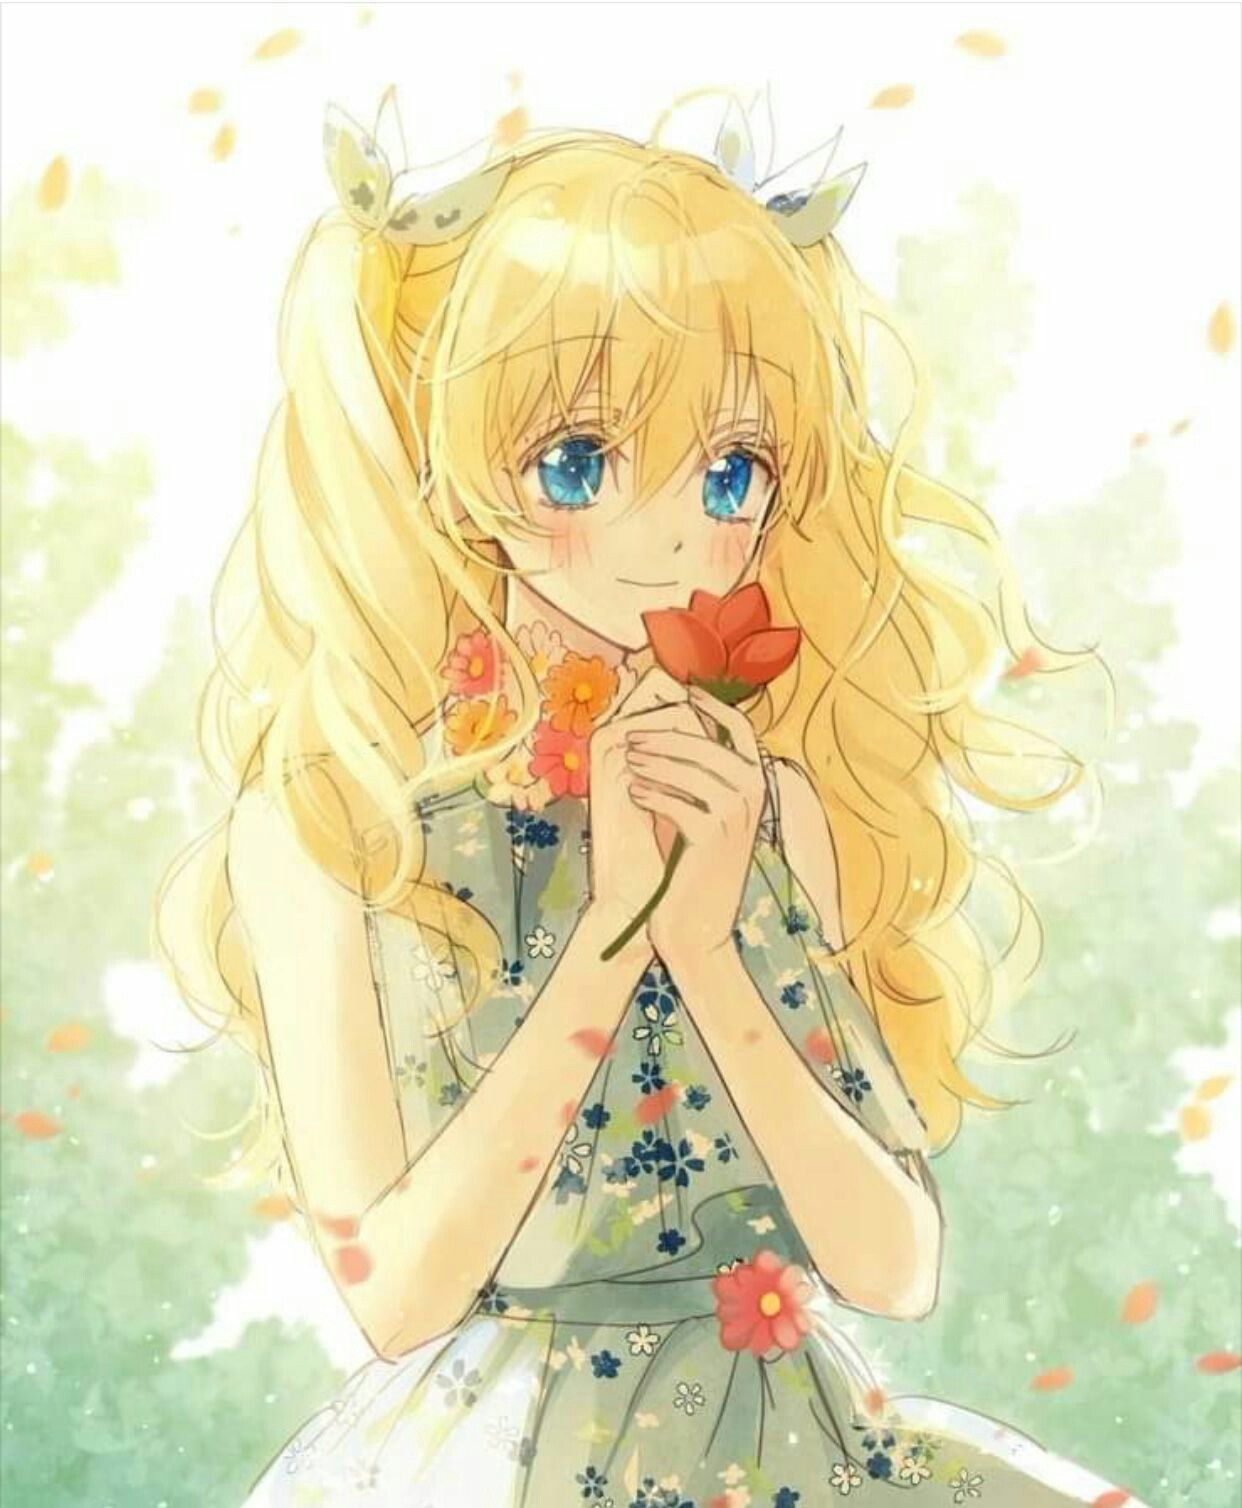 Eevee Chan S Who Made Me A Princess Images From The Web In 2020 Anime Princess Cute Anime Character Anime Chibi